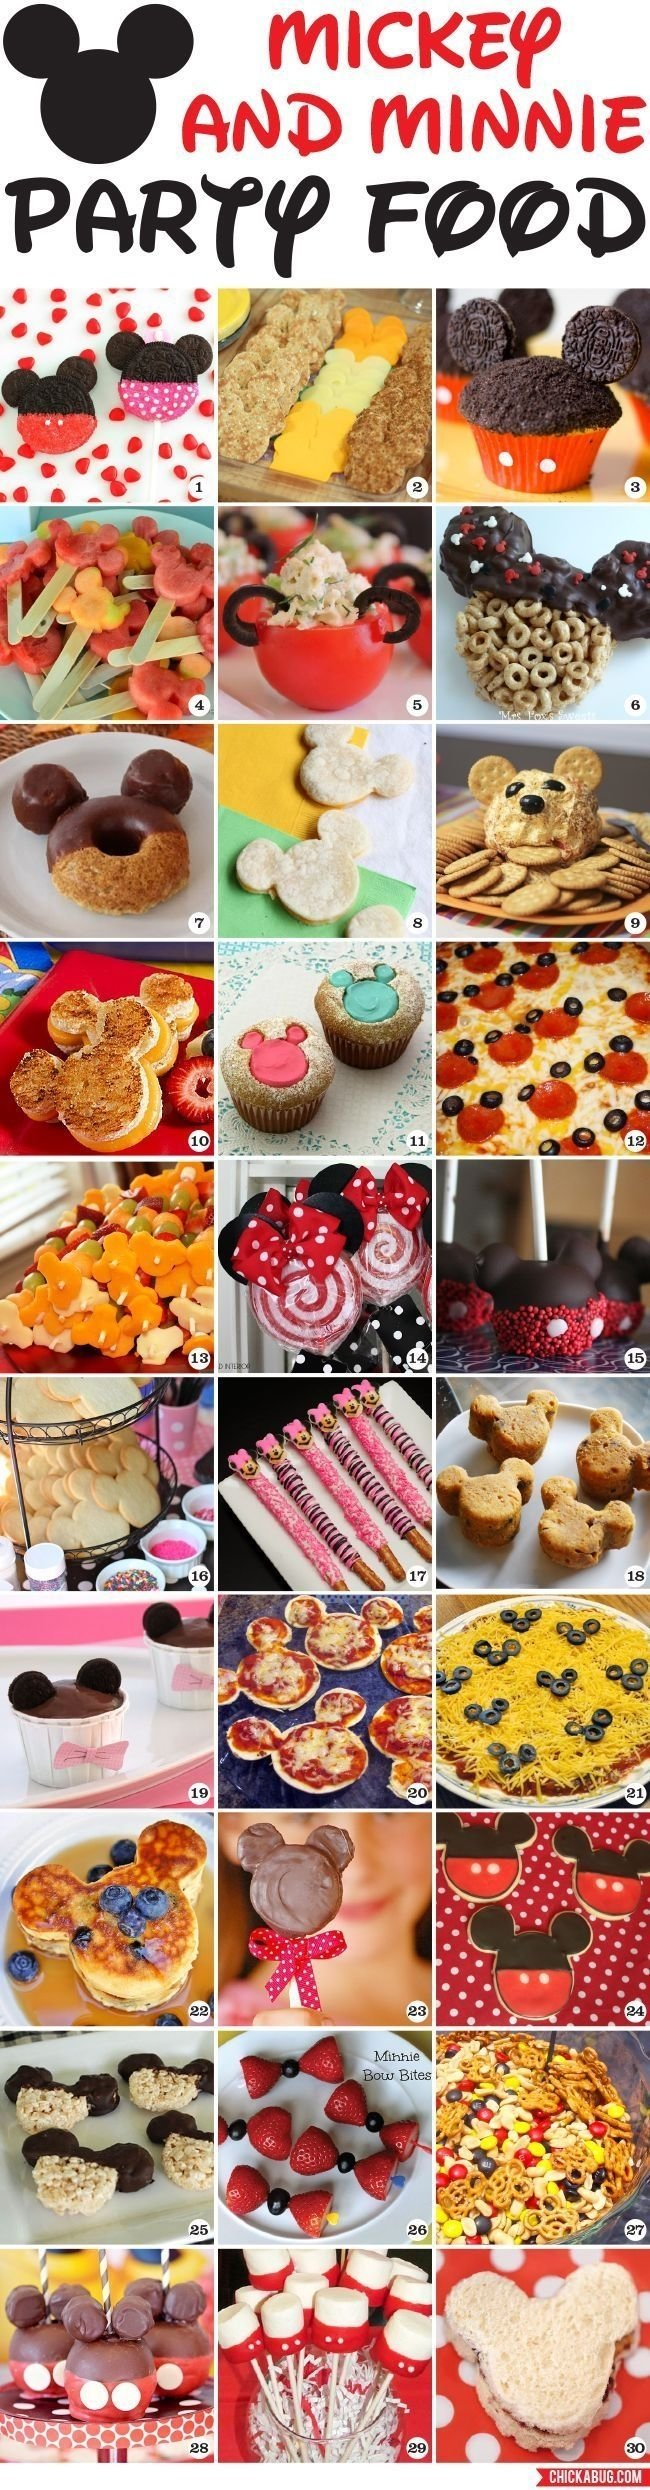 10 Awesome Mickey Mouse Party Food Ideas 30 awesome mickey mouse and minnie mouse party food ideas